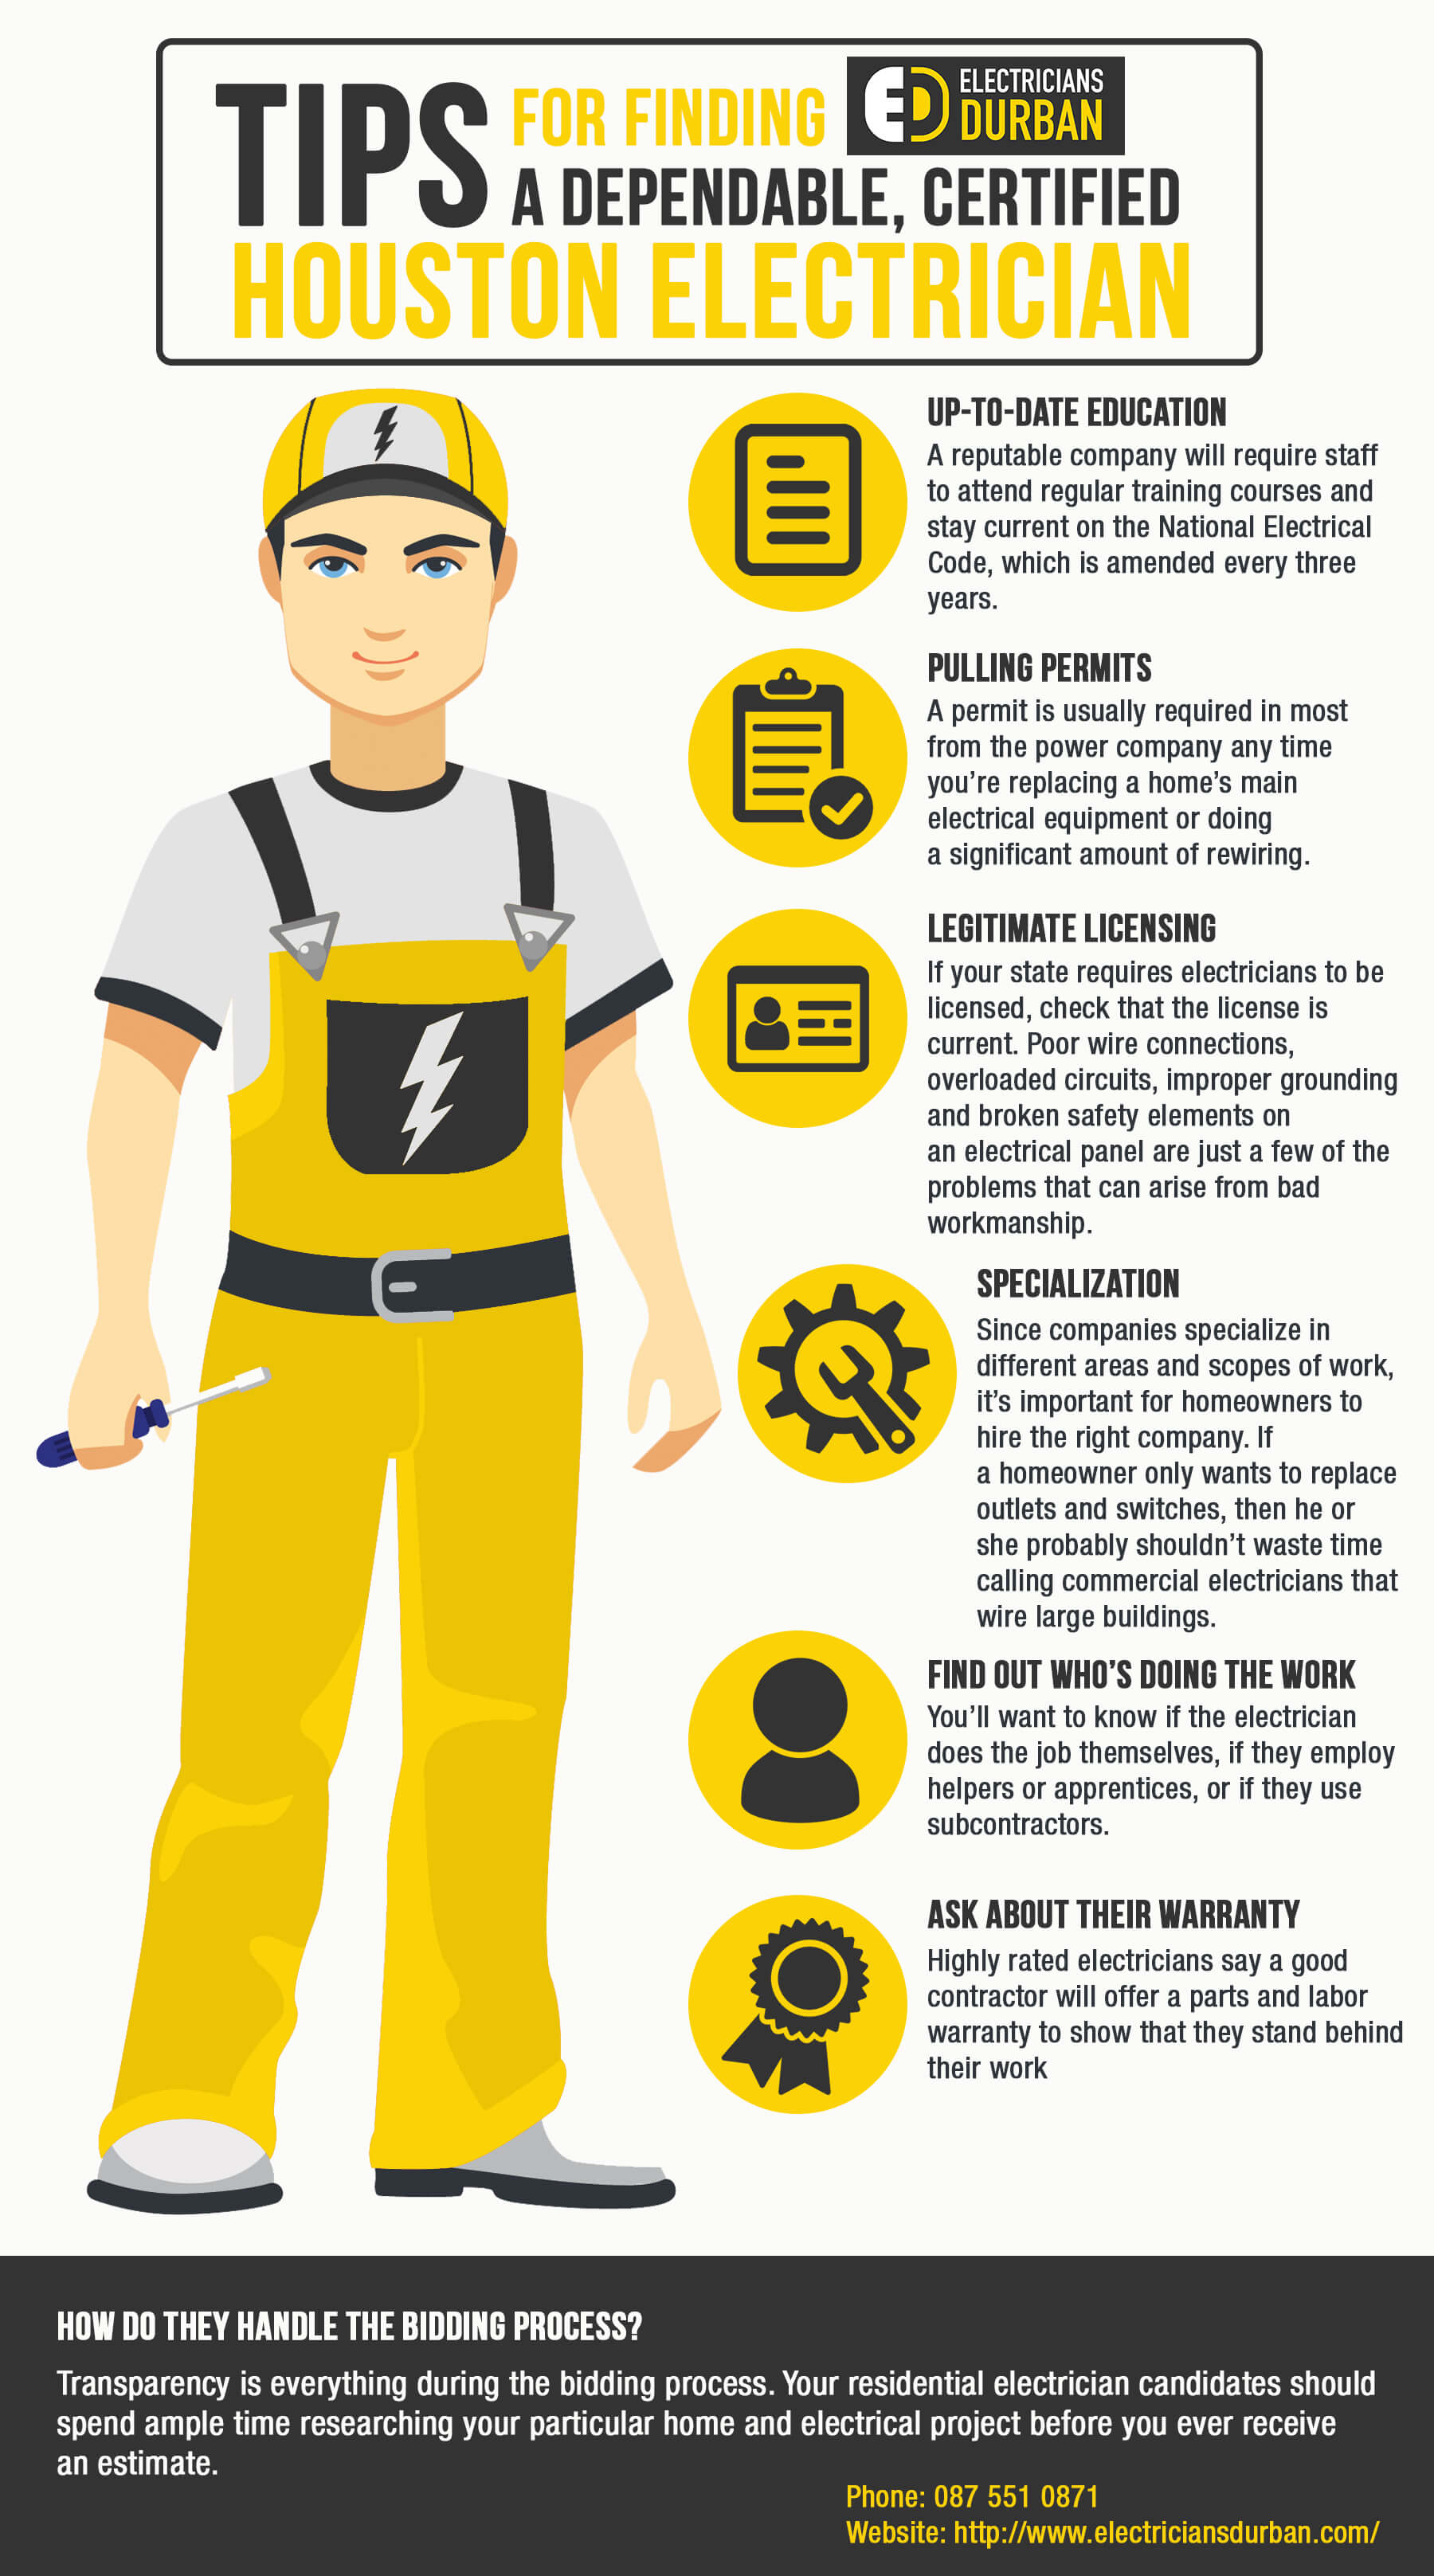 find-houston-electrician-tips-infographic-plaza